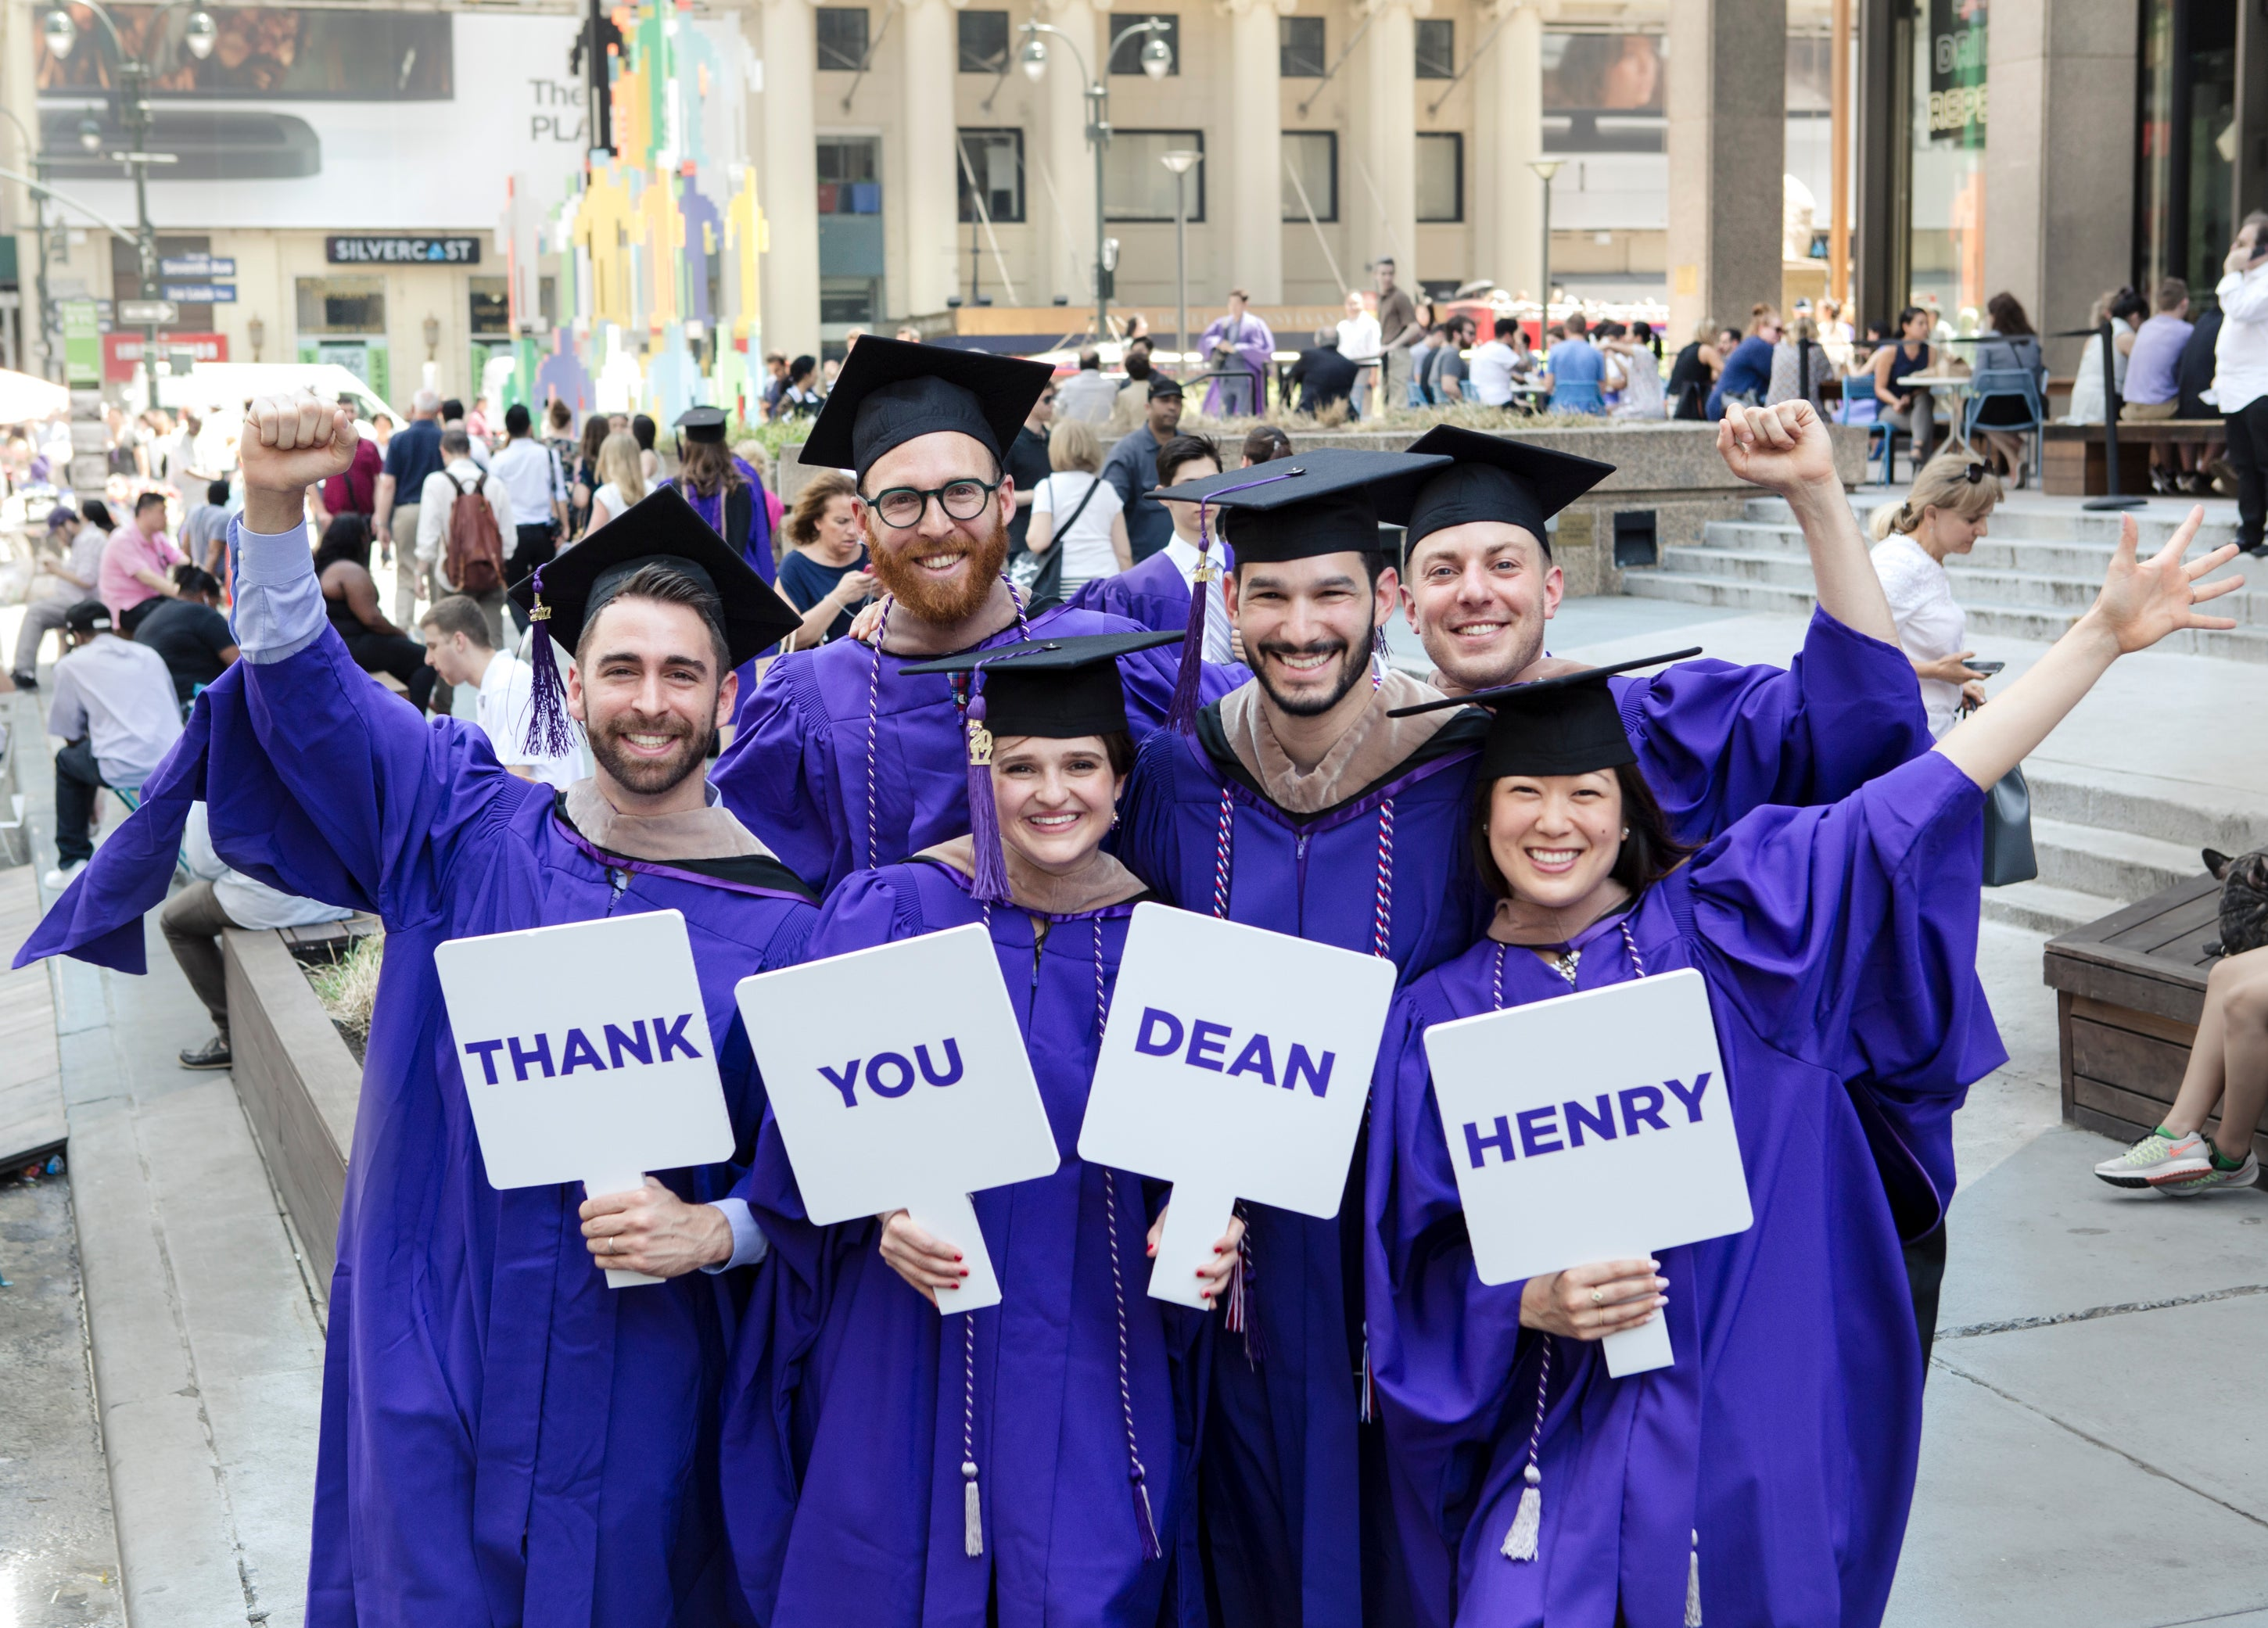 Thank you, Dean Henry